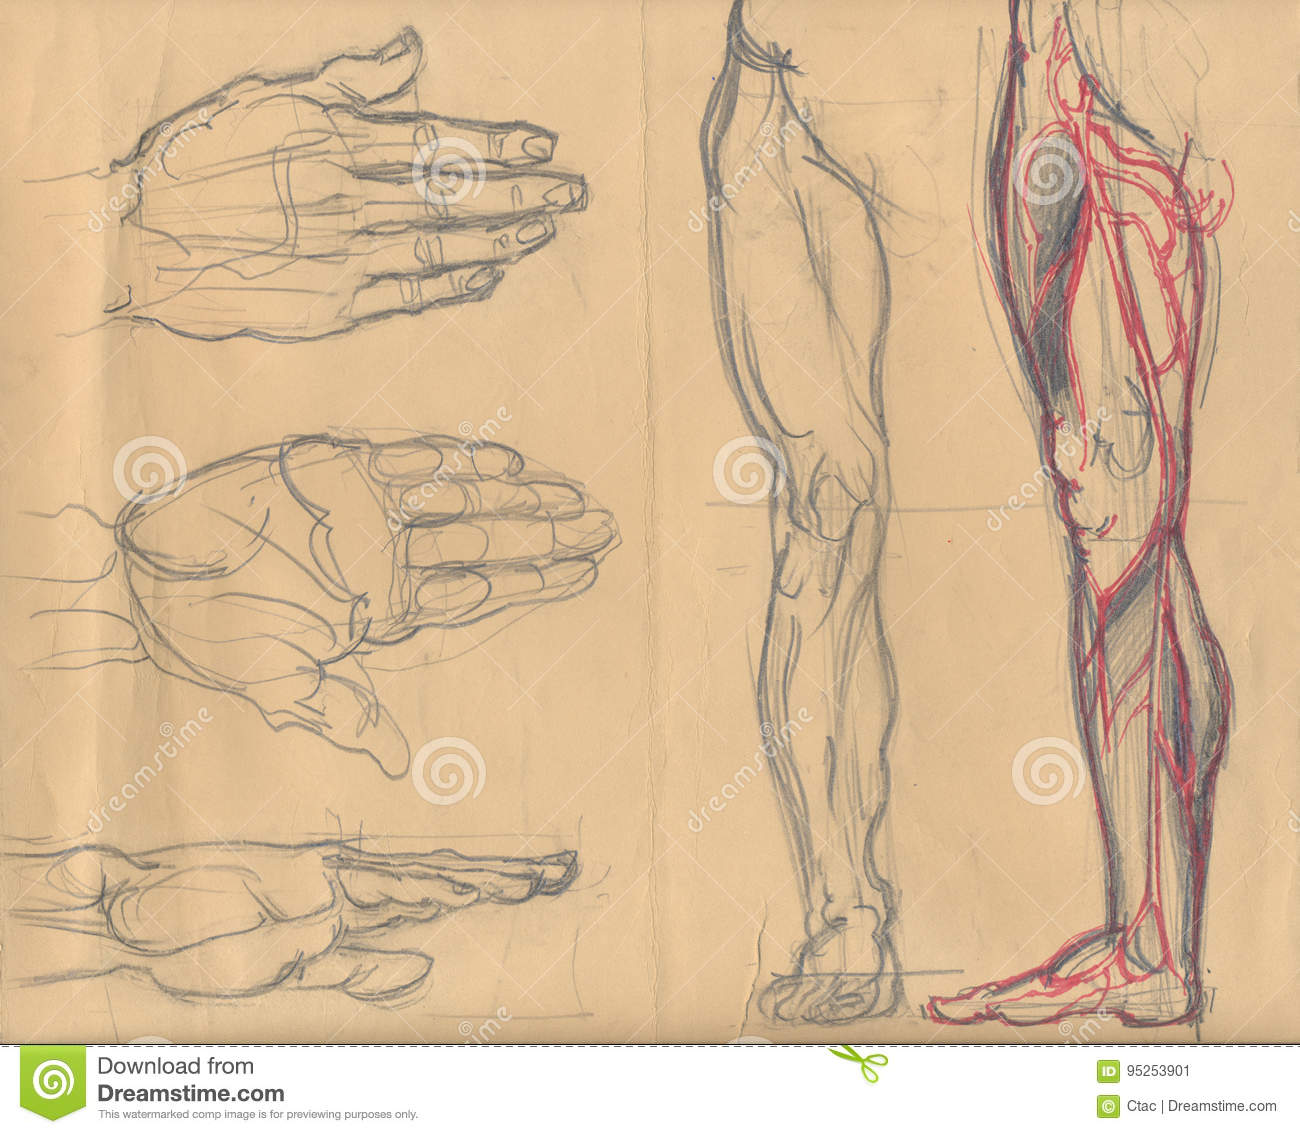 Leg and palm sketches stock illustration. Illustration of brown ...